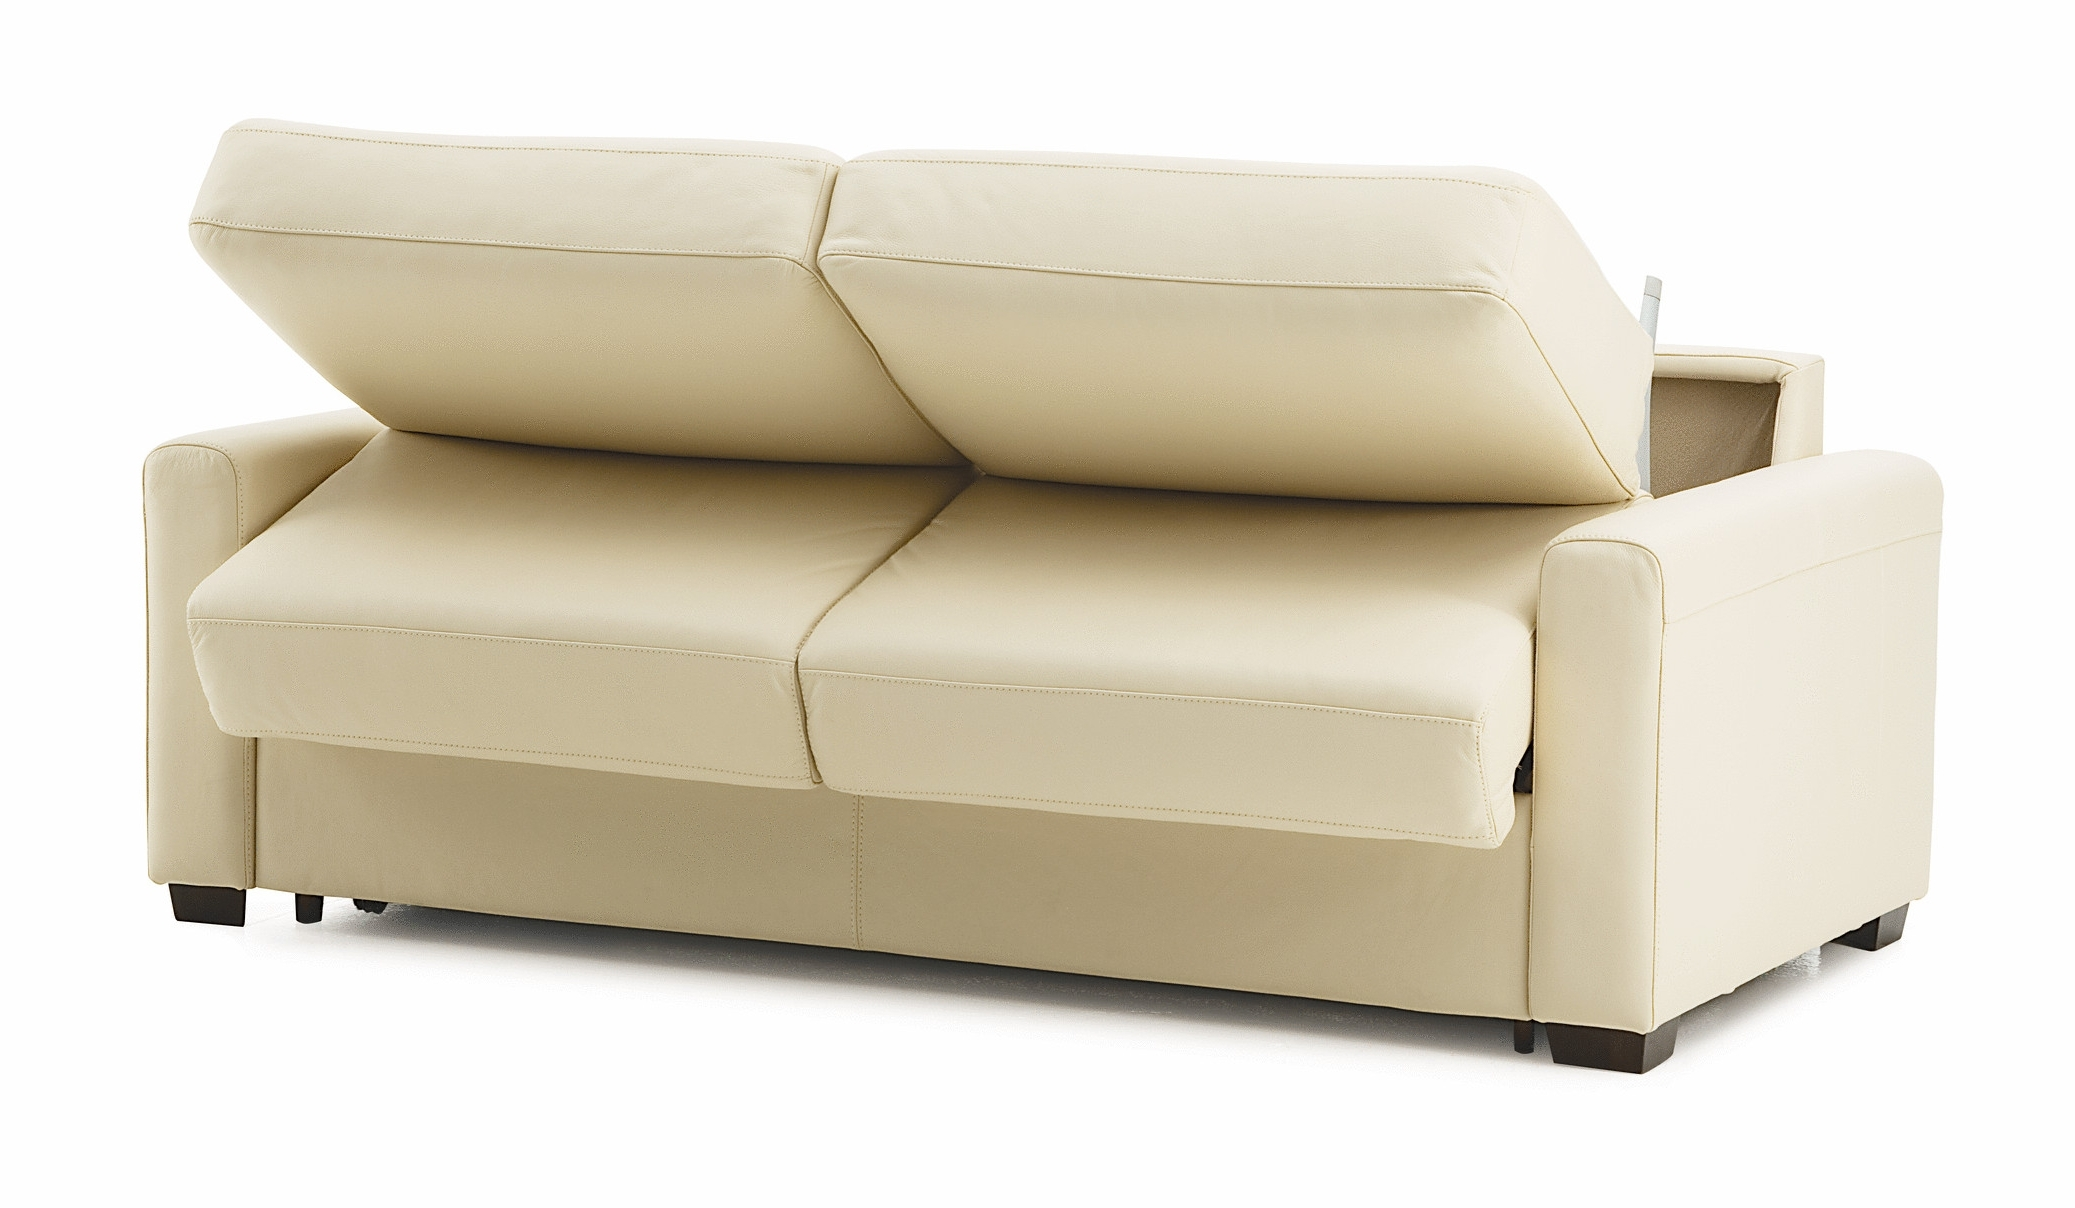 2018 Maximizing Small Spaces Using White Leather Twin Size Sleeper Sofa Pertaining To Twin Sleeper Sofa Chairs (View 12 of 15)